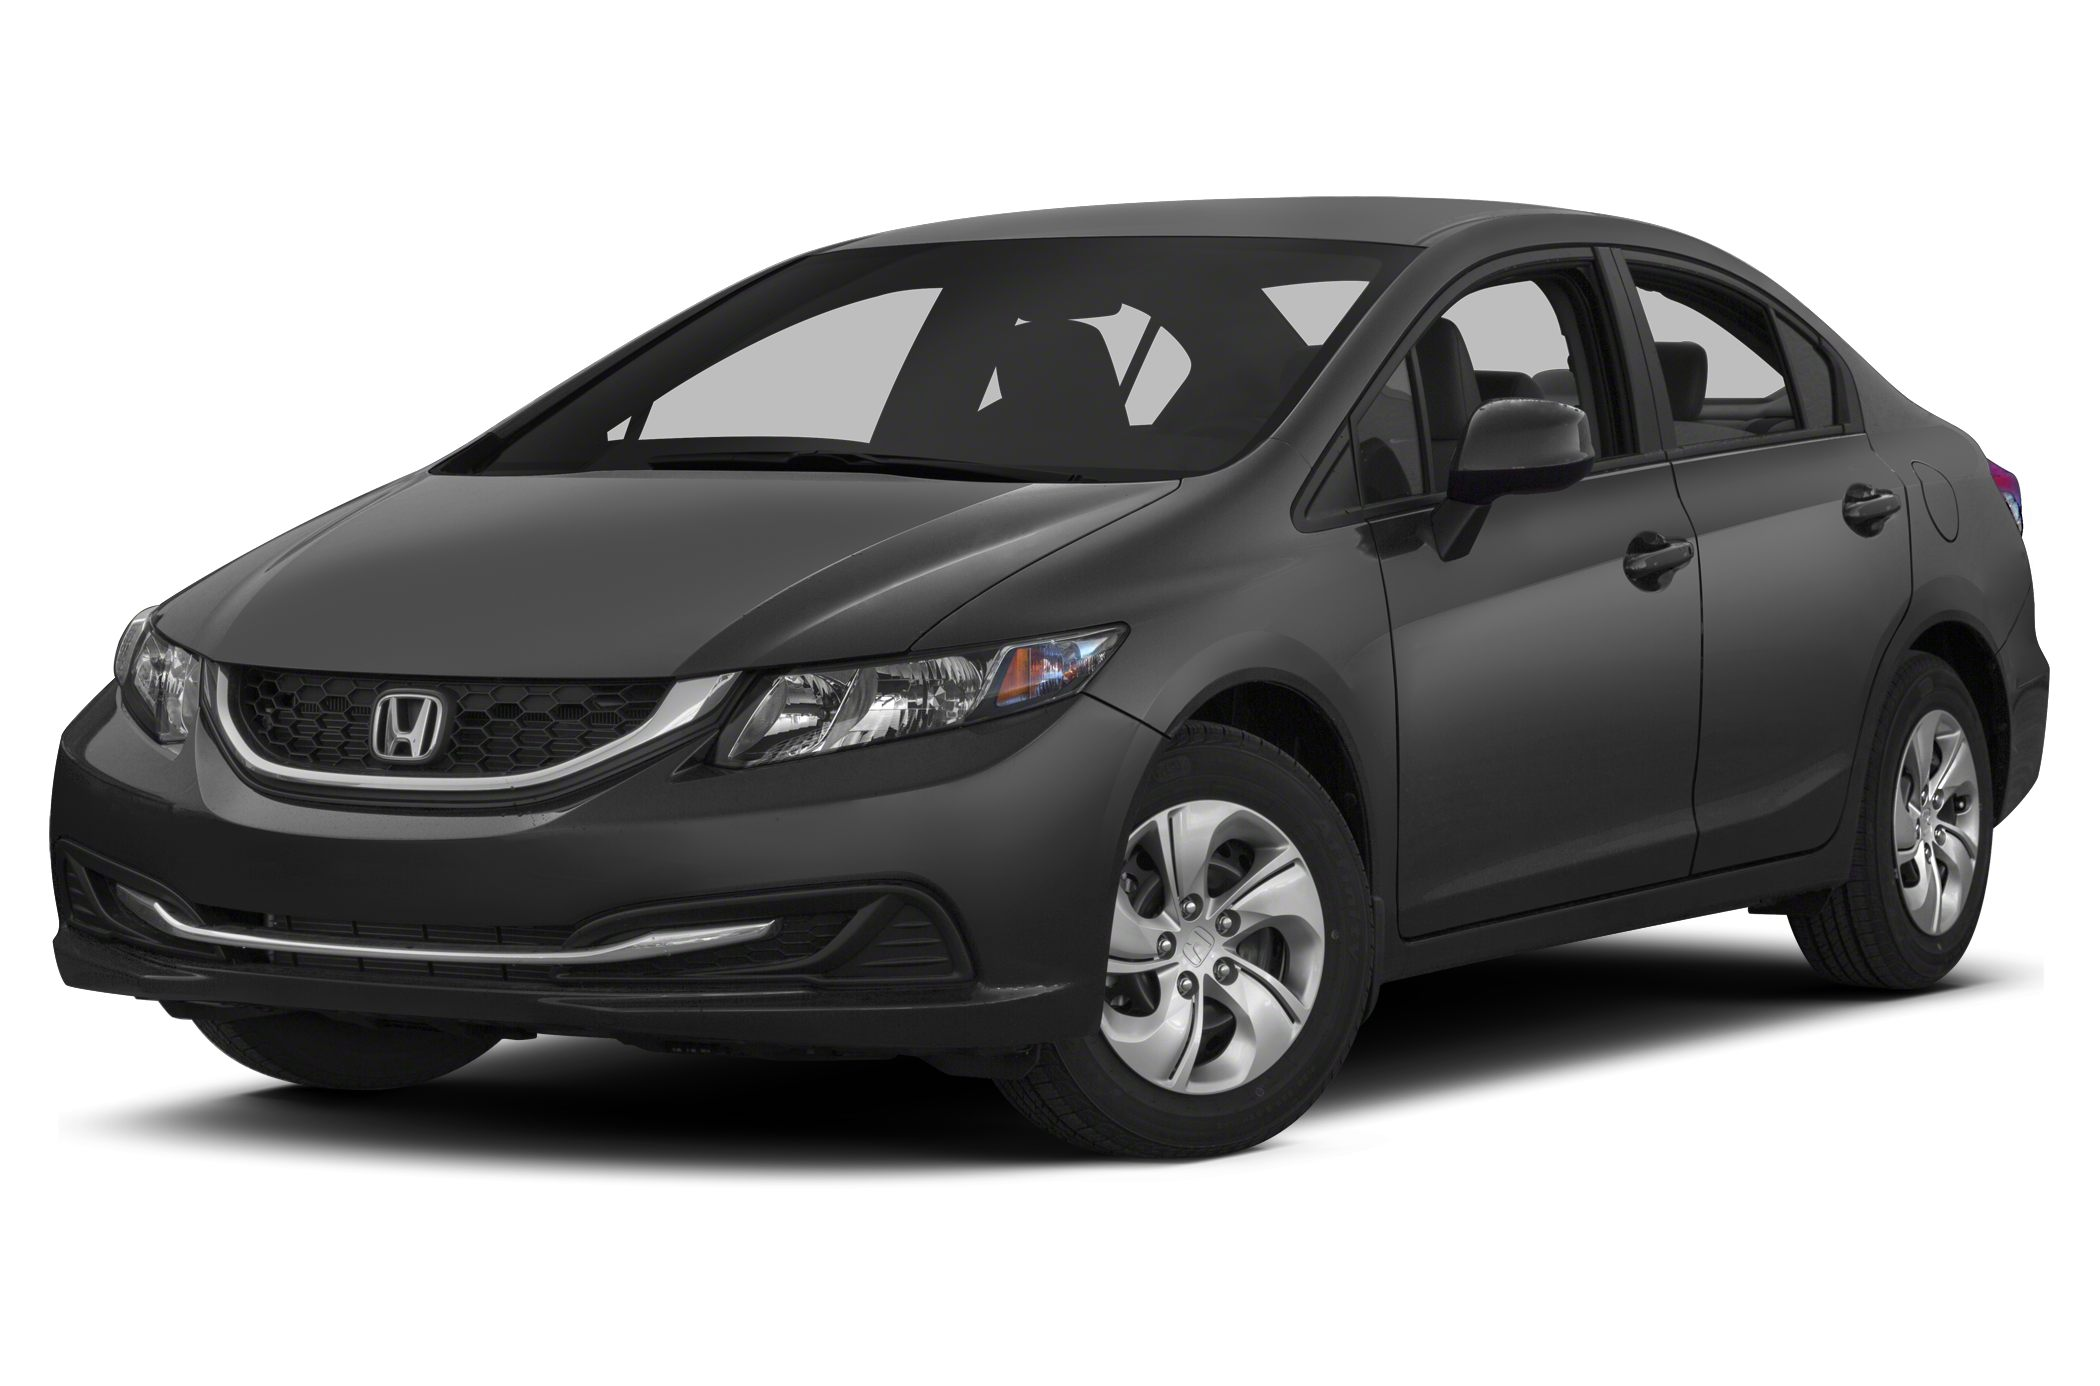 2013 Honda Civic LX This particular One-Owner Civic is a wonderful example of the best value on th